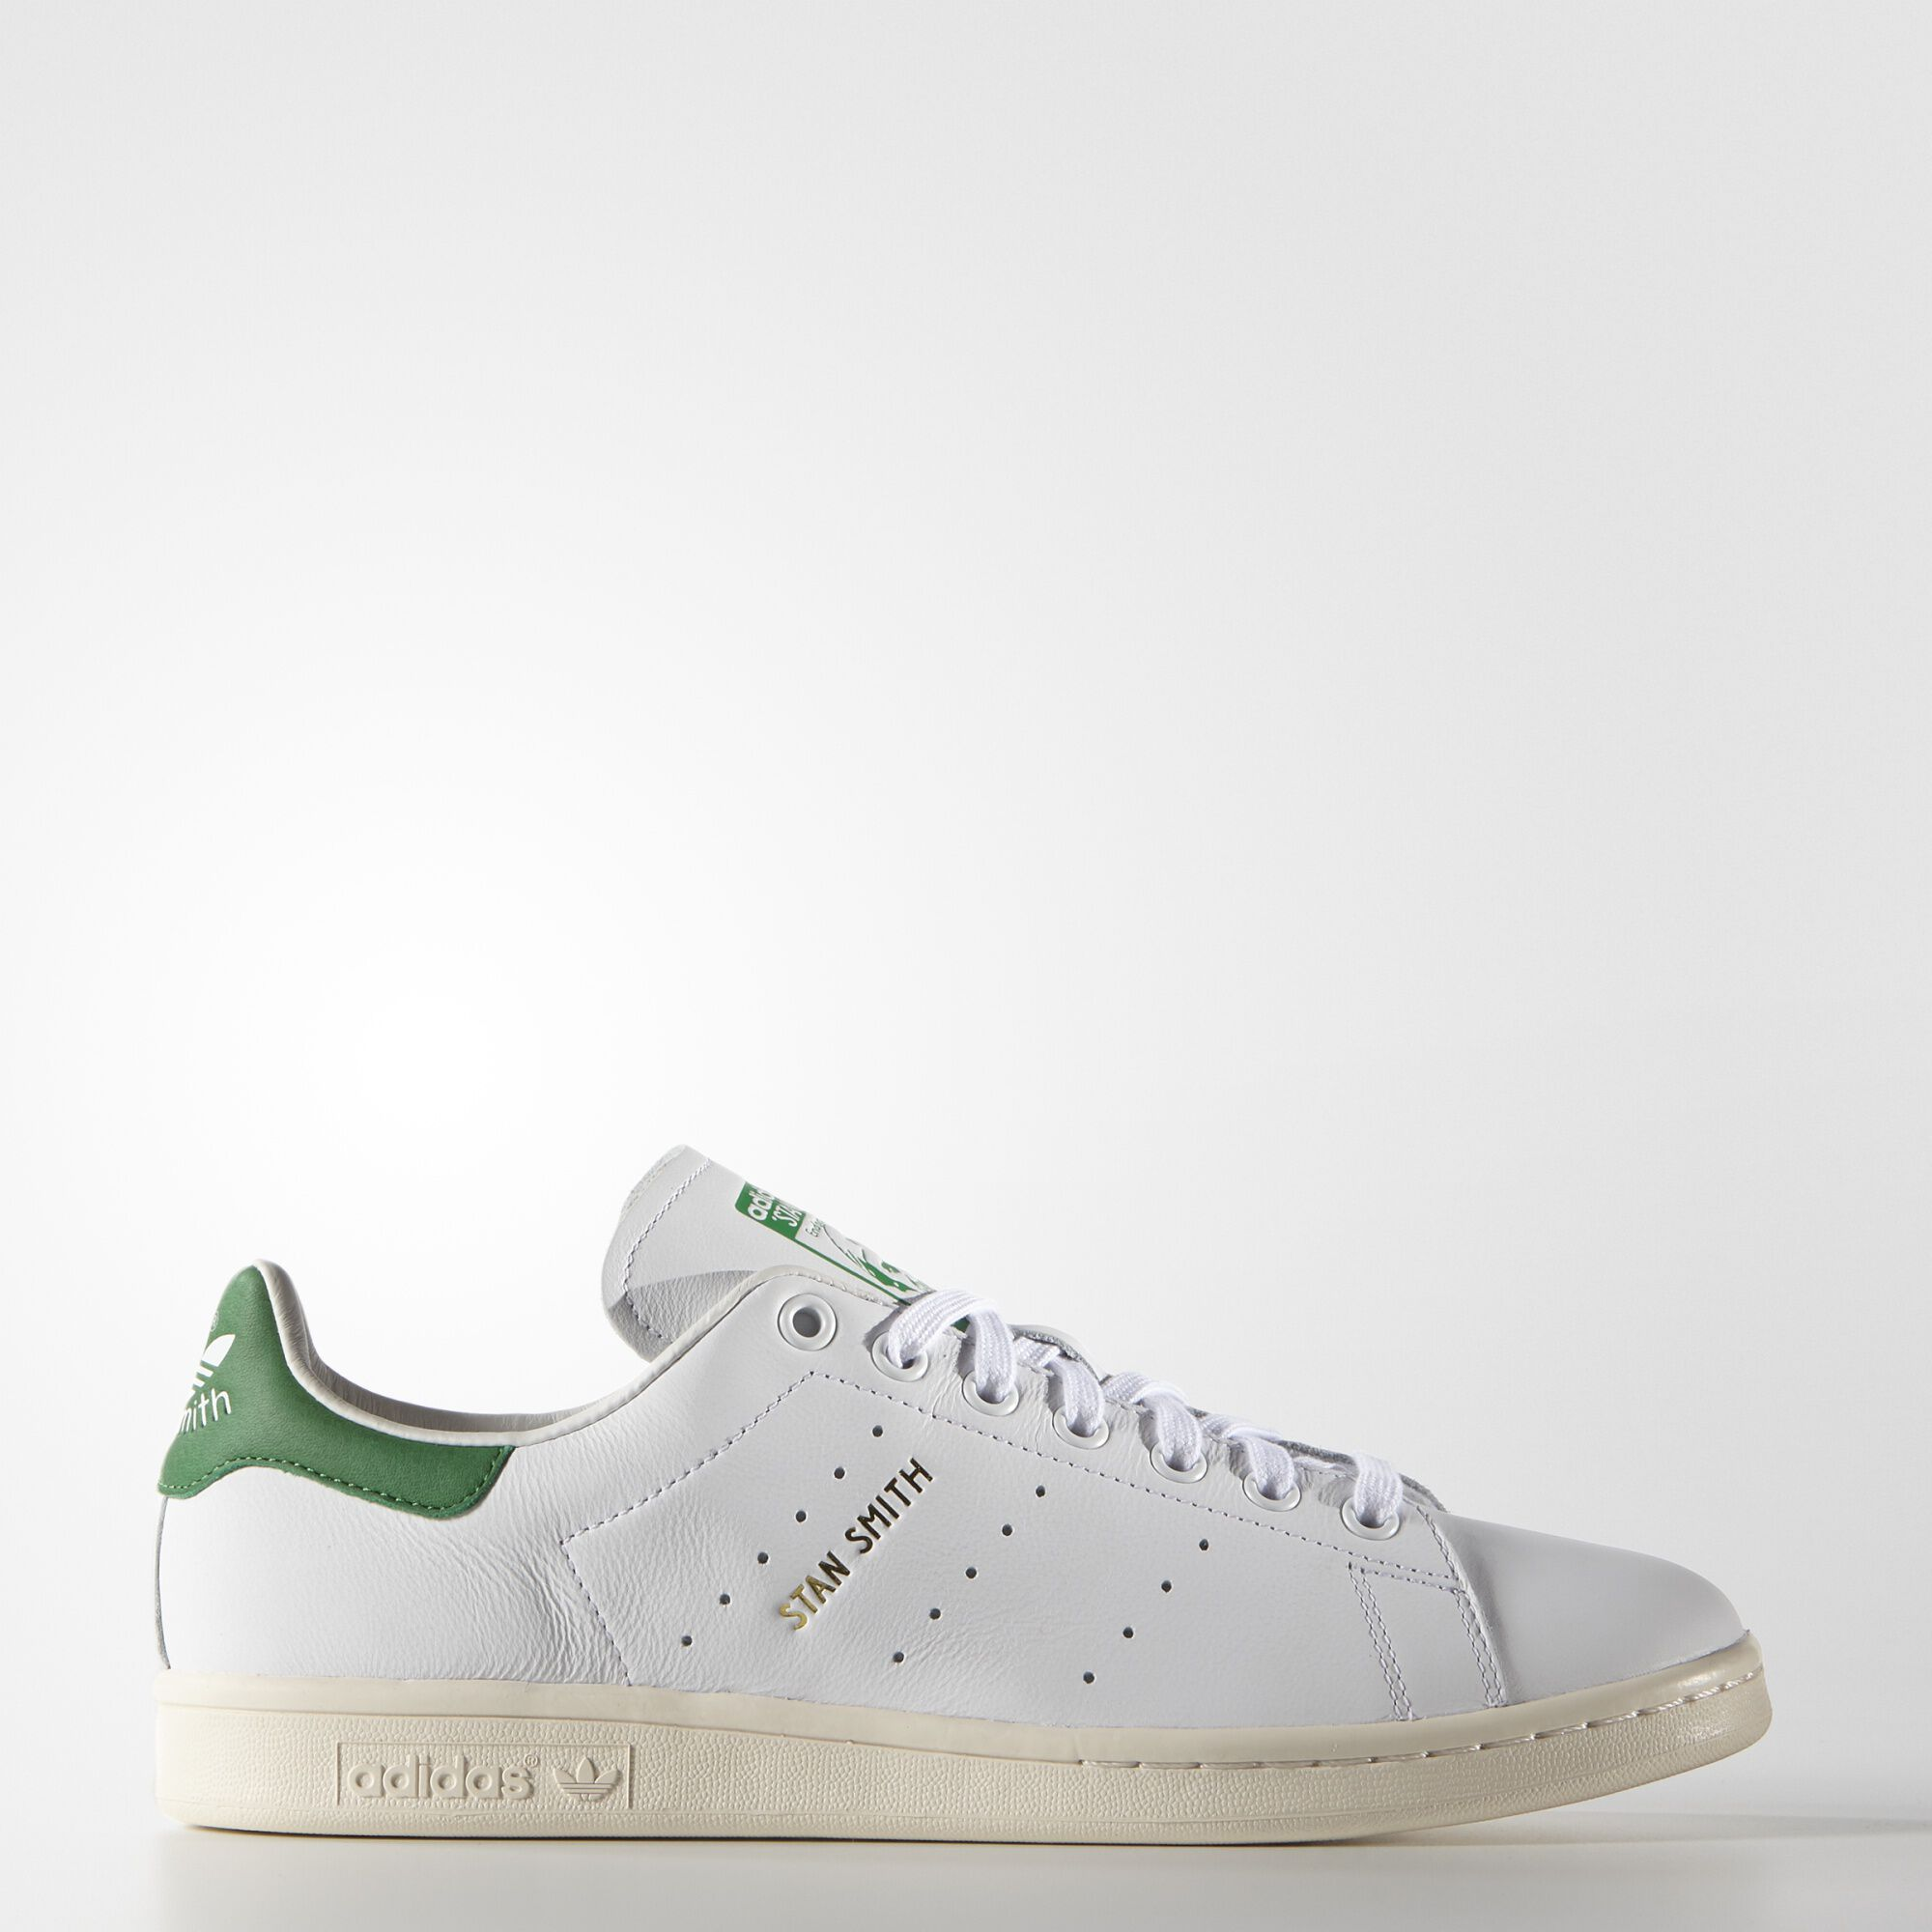 adidas x stan smith sneakers